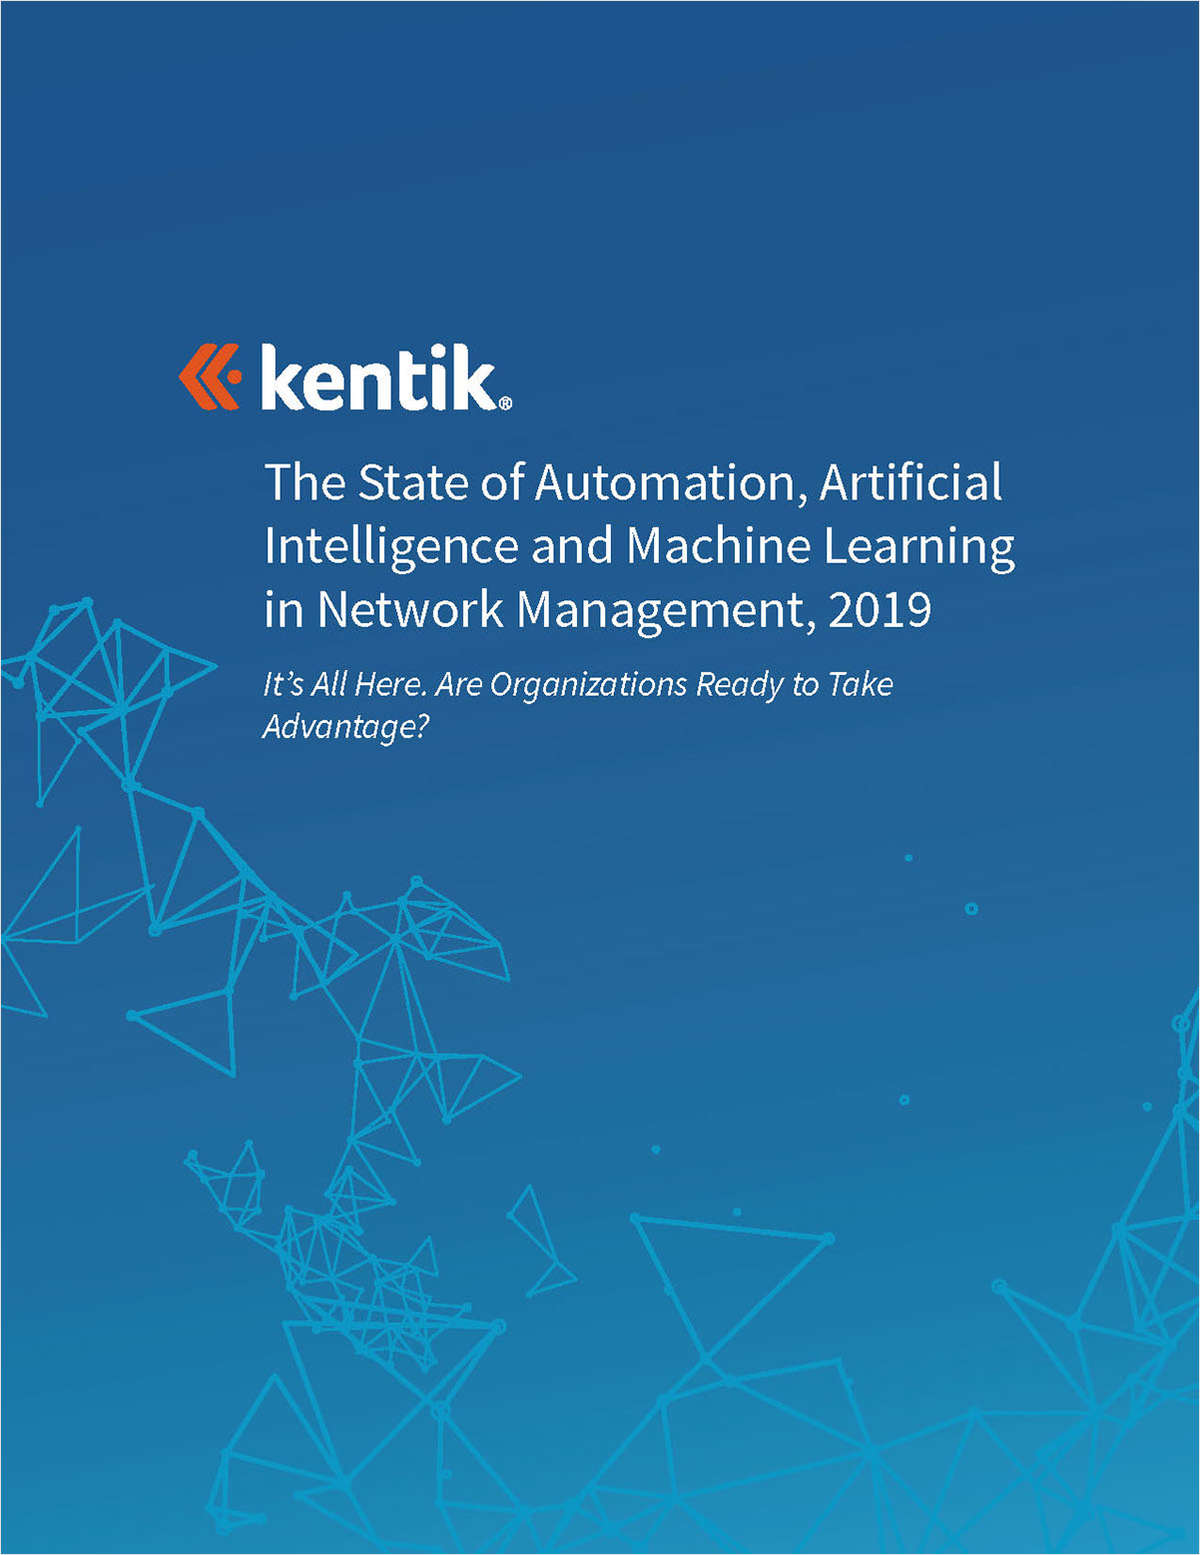 The State of Automation, Artificial Intelligence and Machine Learning in Network Management, 2019